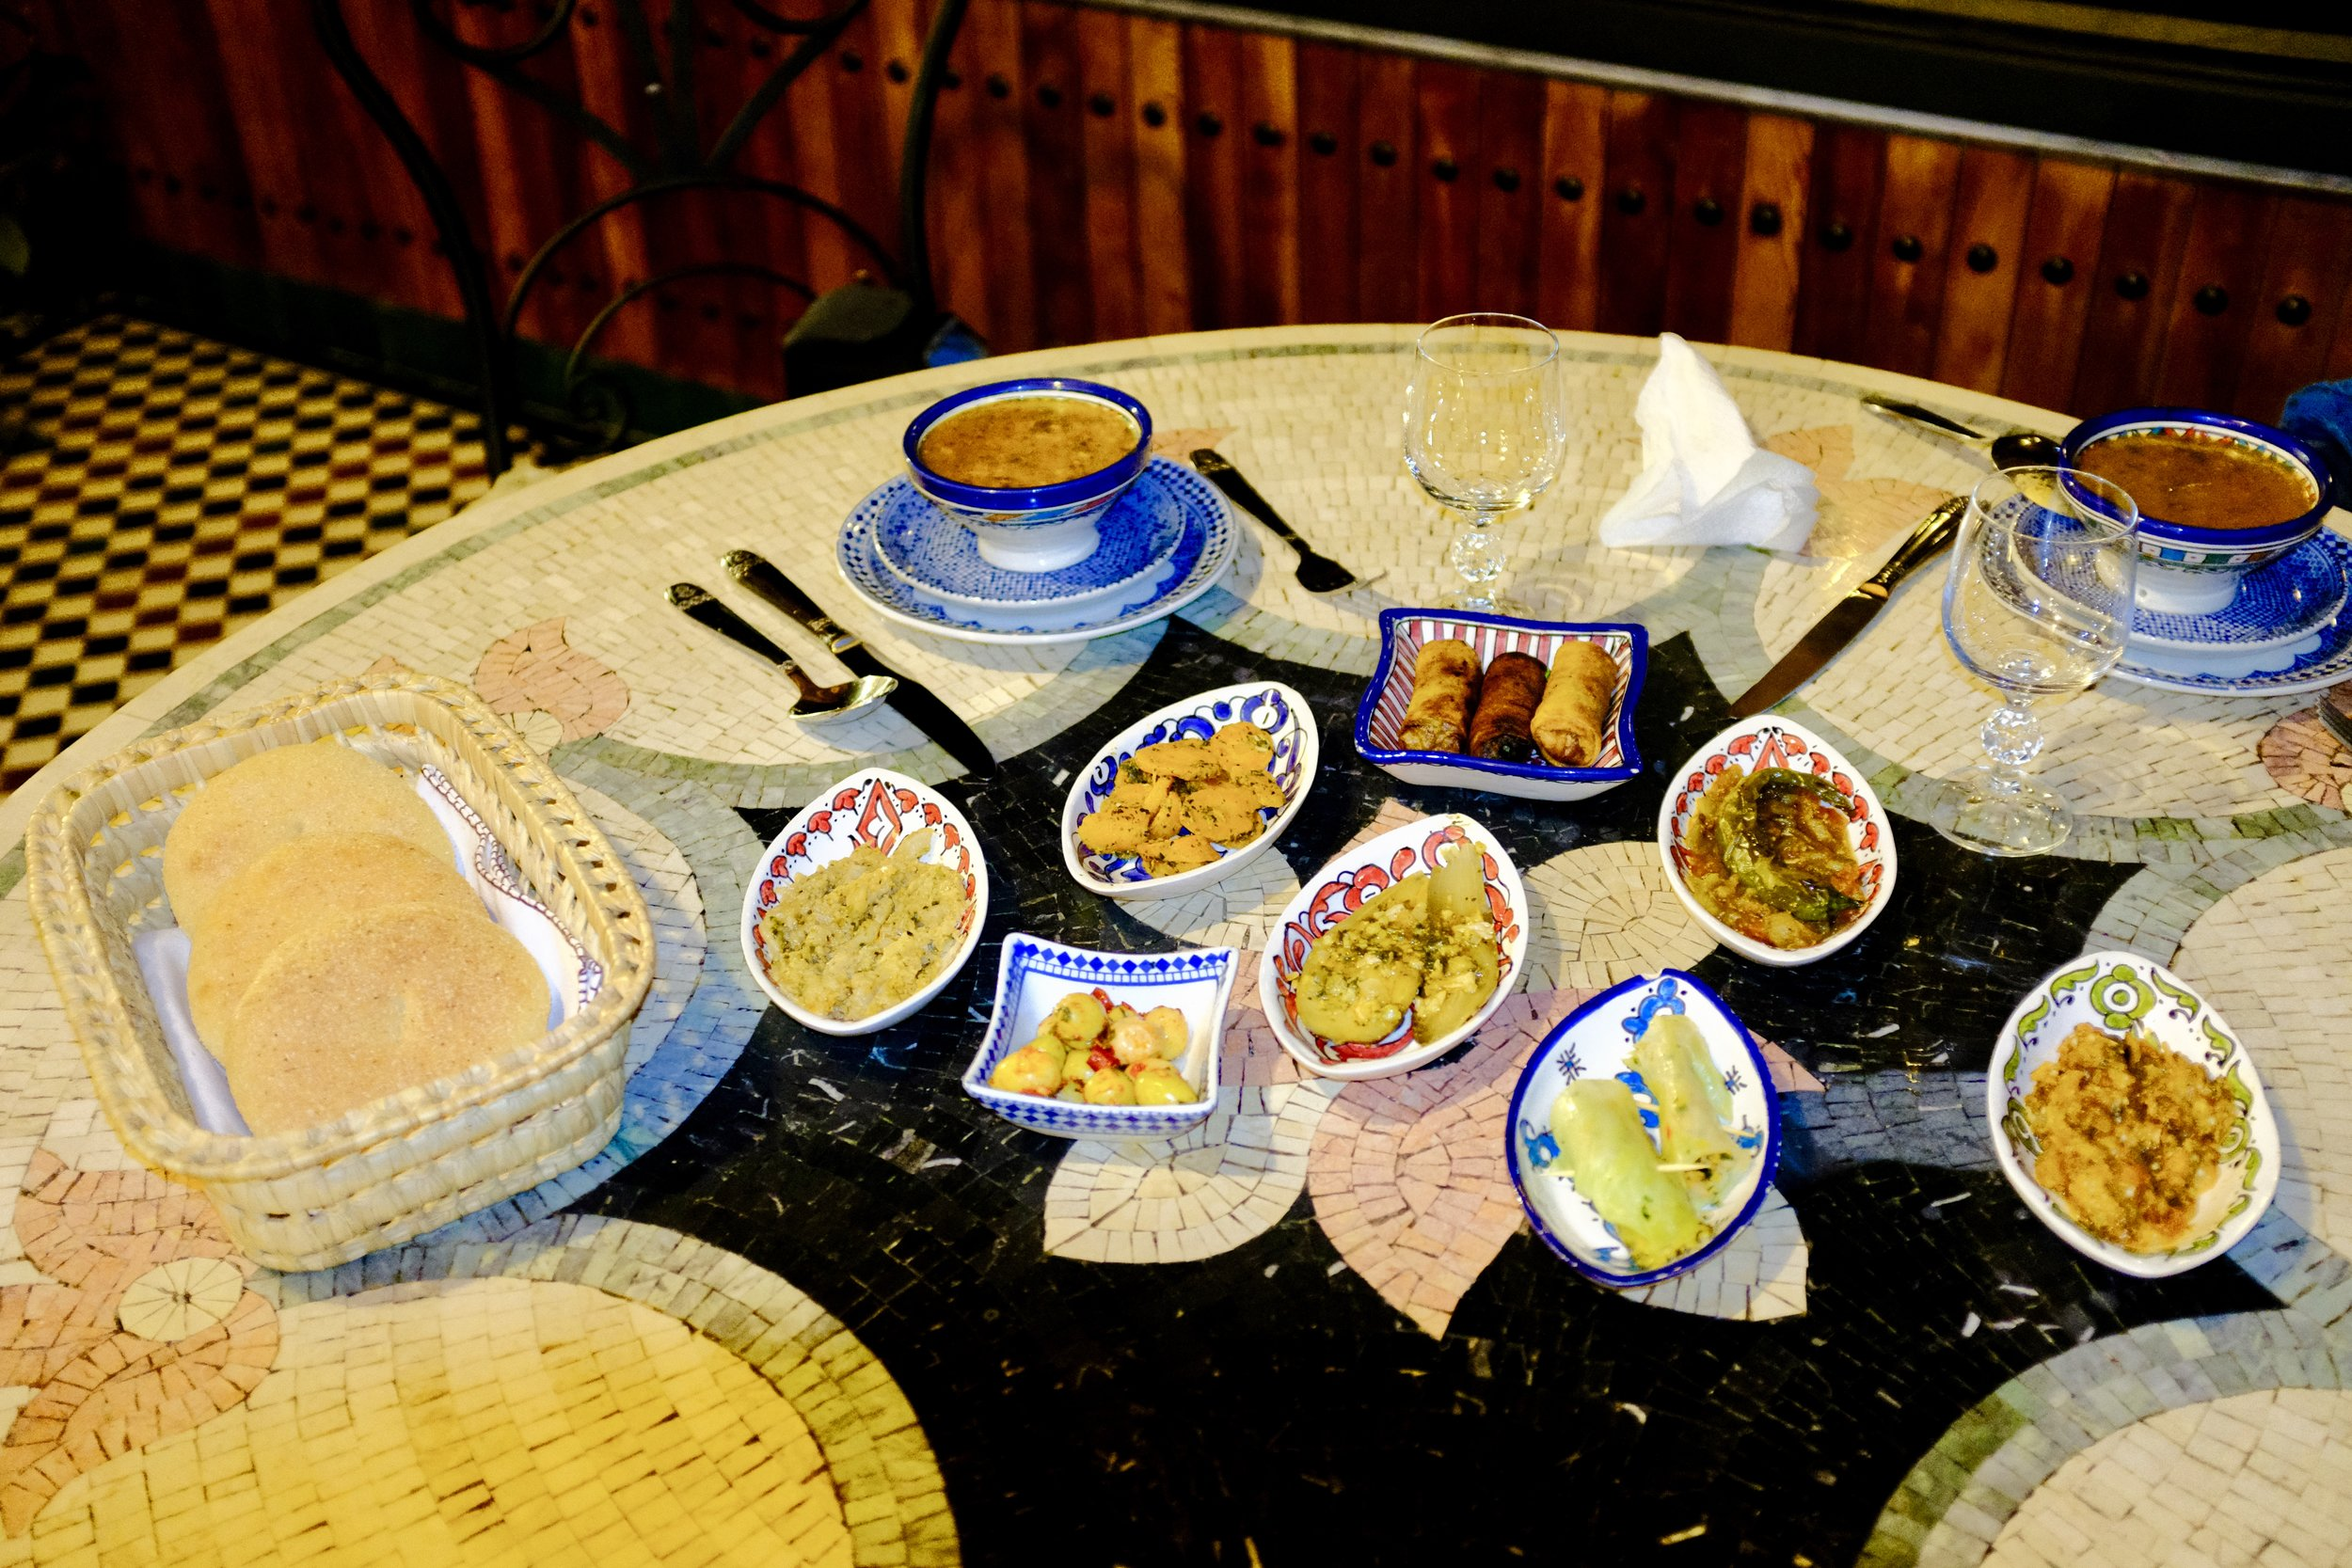 Our appetizer course that first night while eating dinner at Riad Fes Maya.